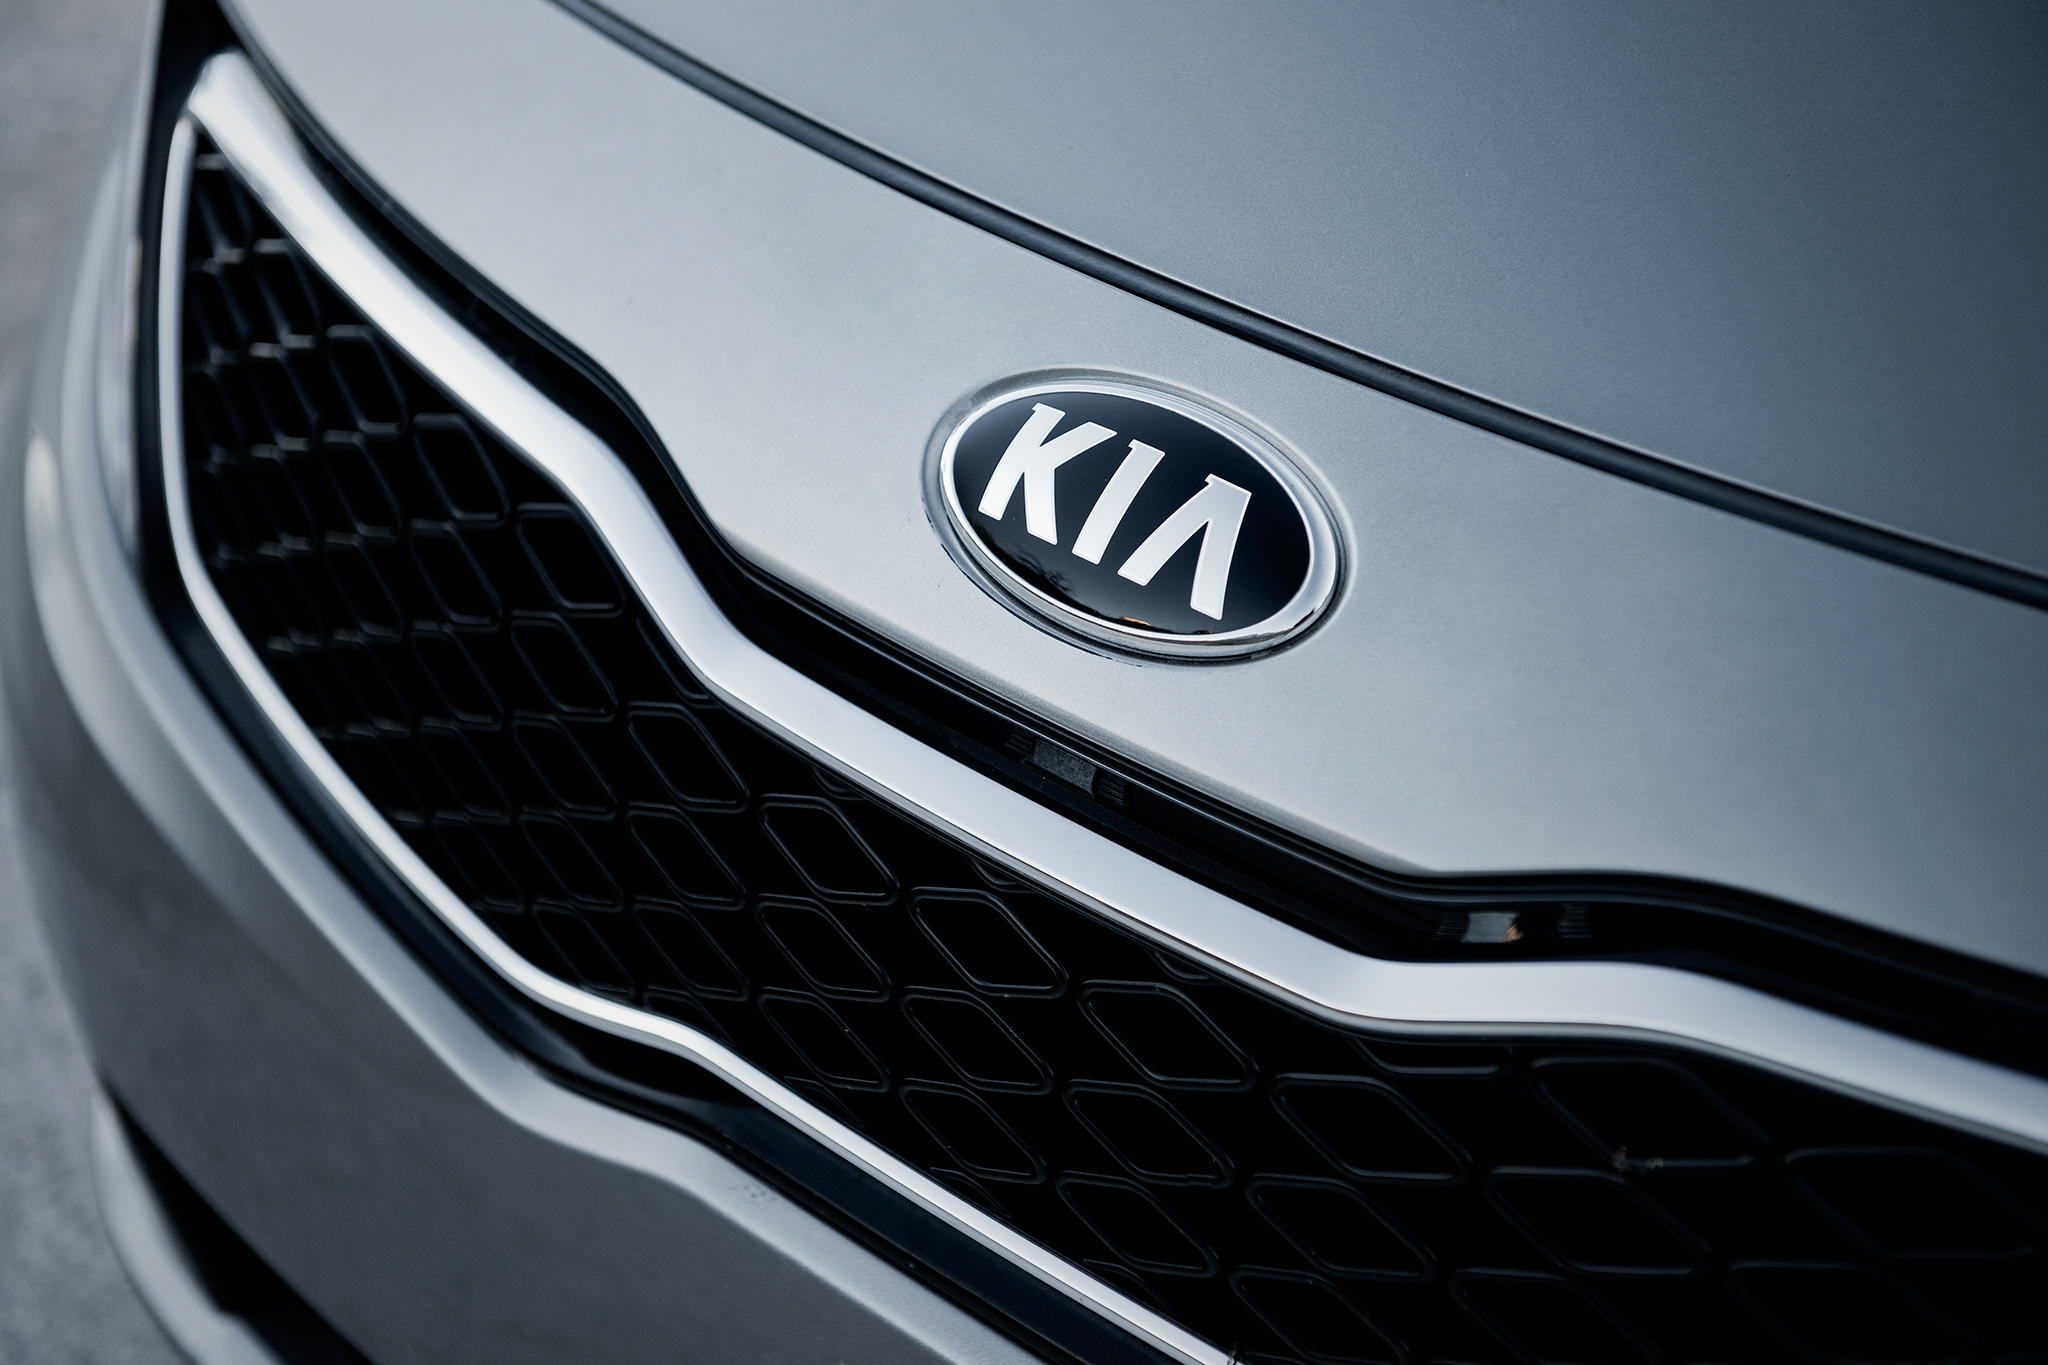 kia soul car insurance rates 3 models learn about prices discounts. Black Bedroom Furniture Sets. Home Design Ideas